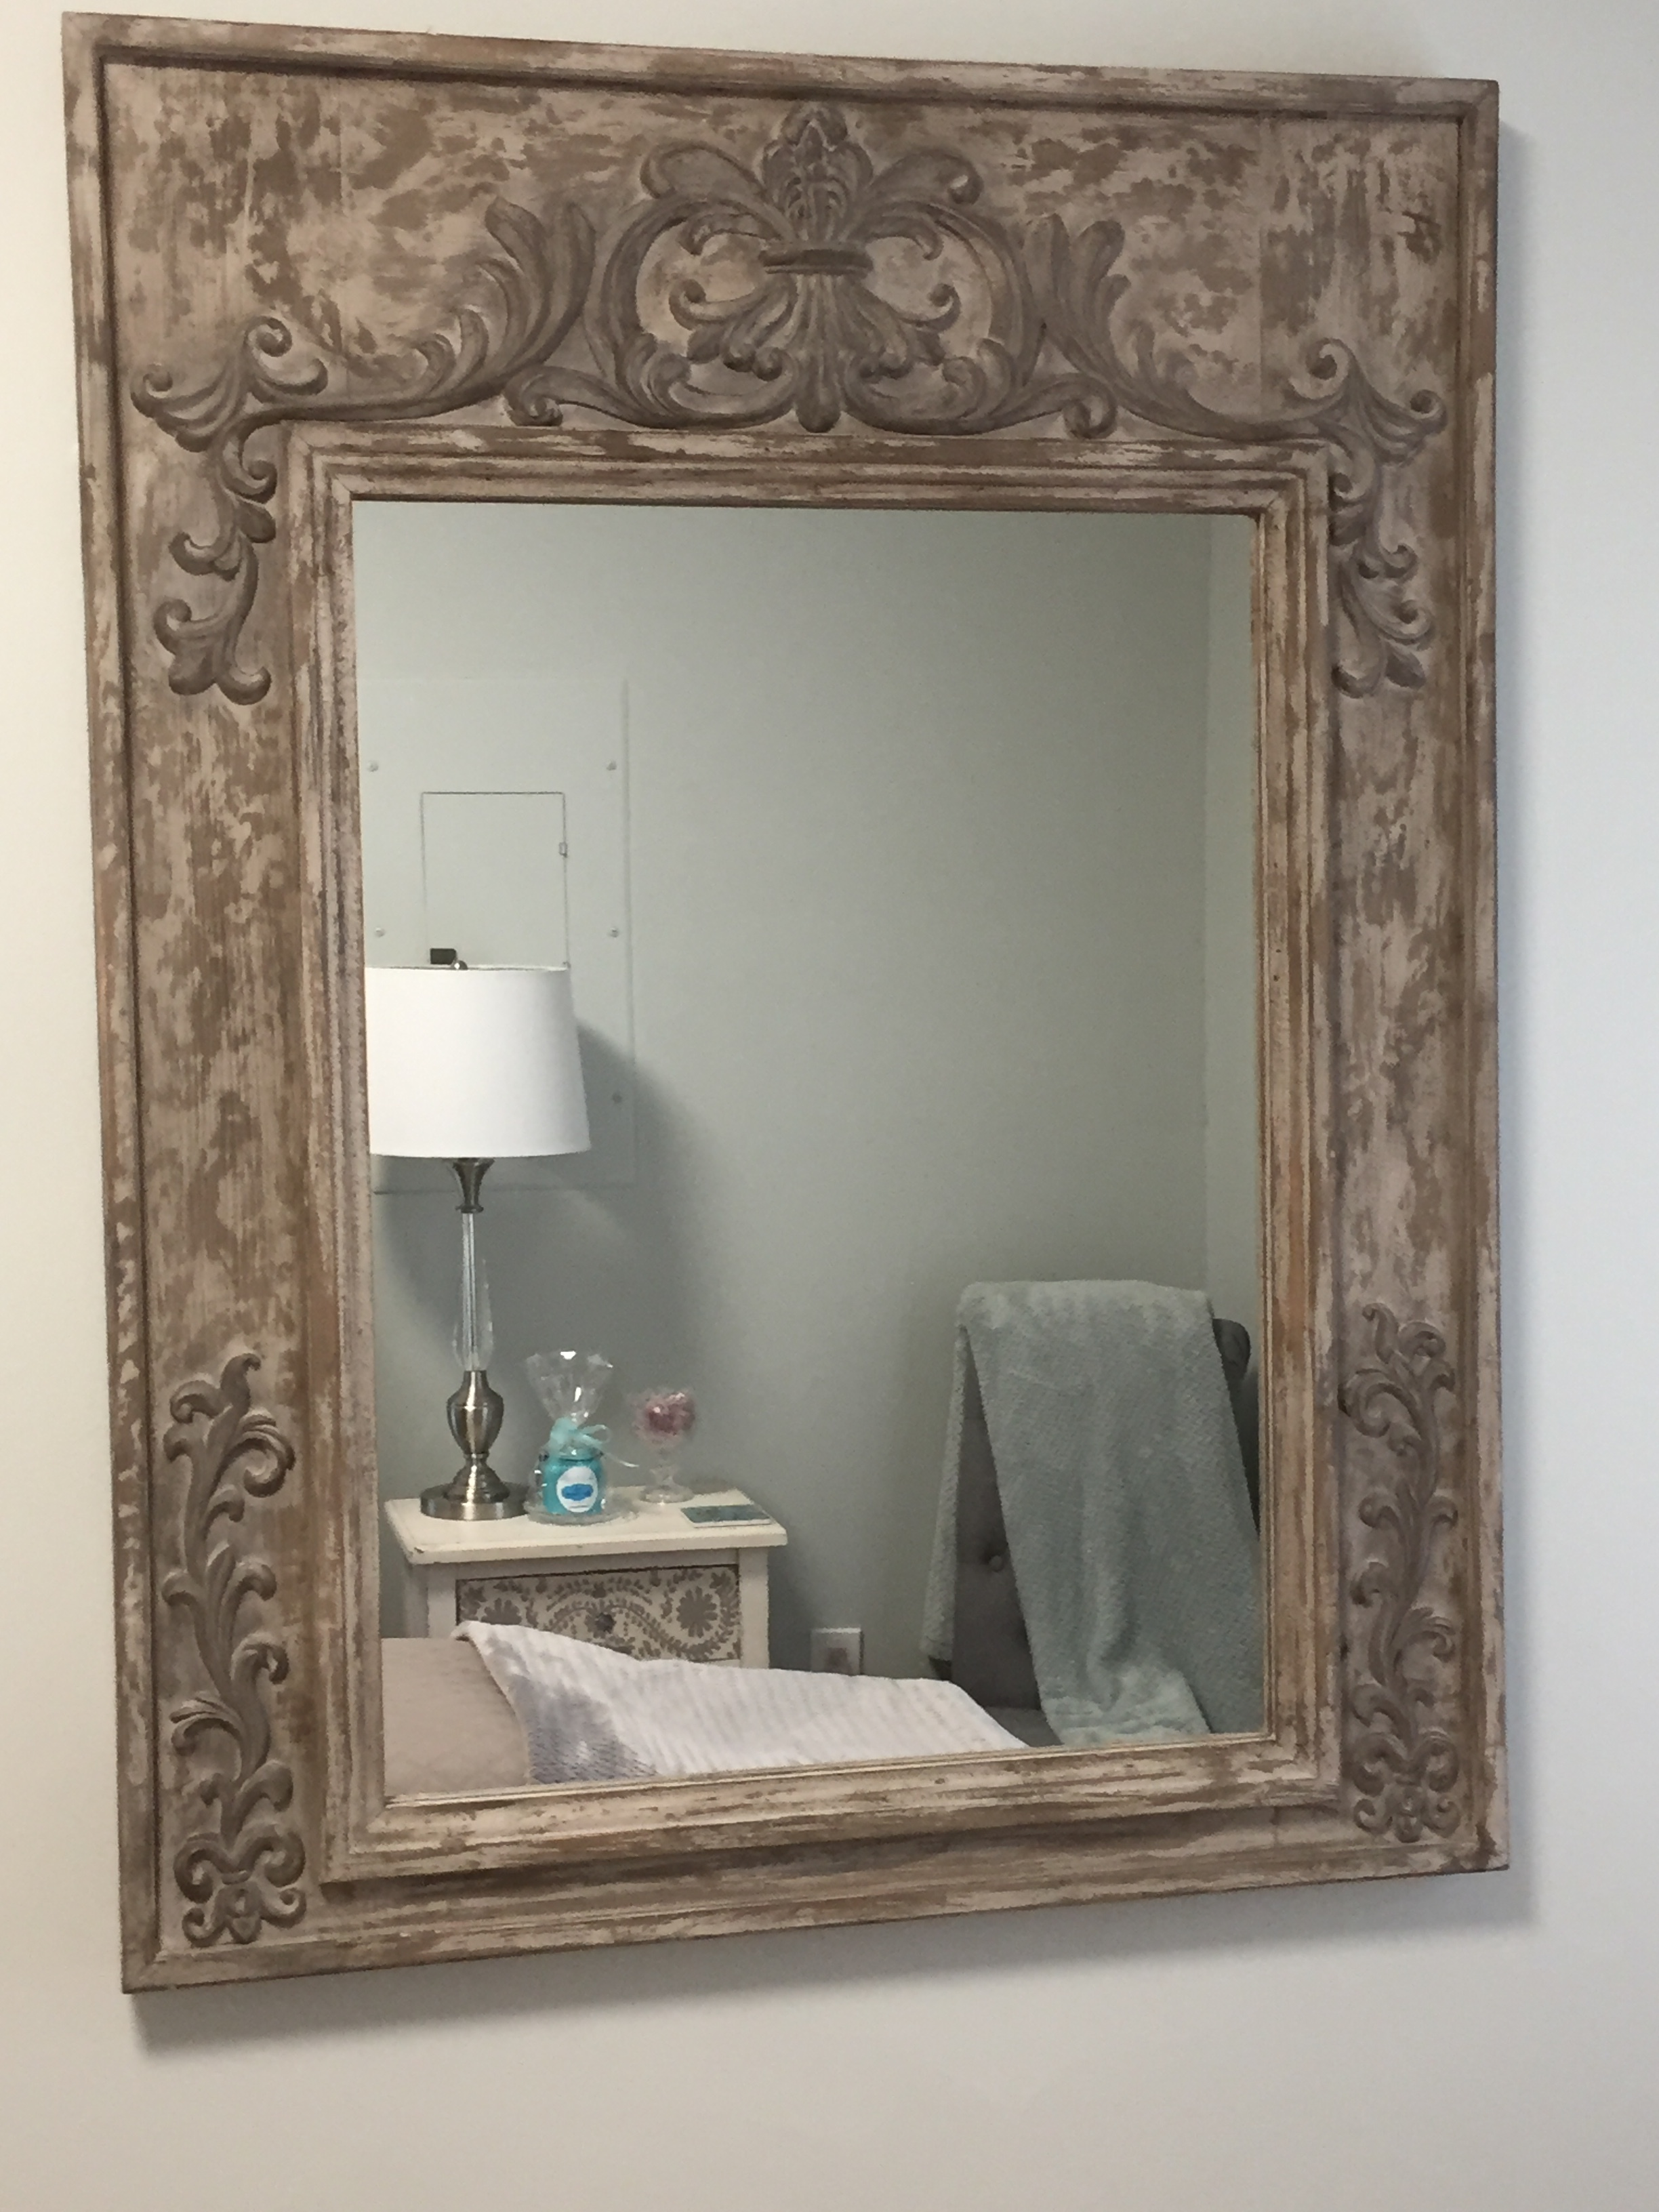 A mirror reflects a treatment room